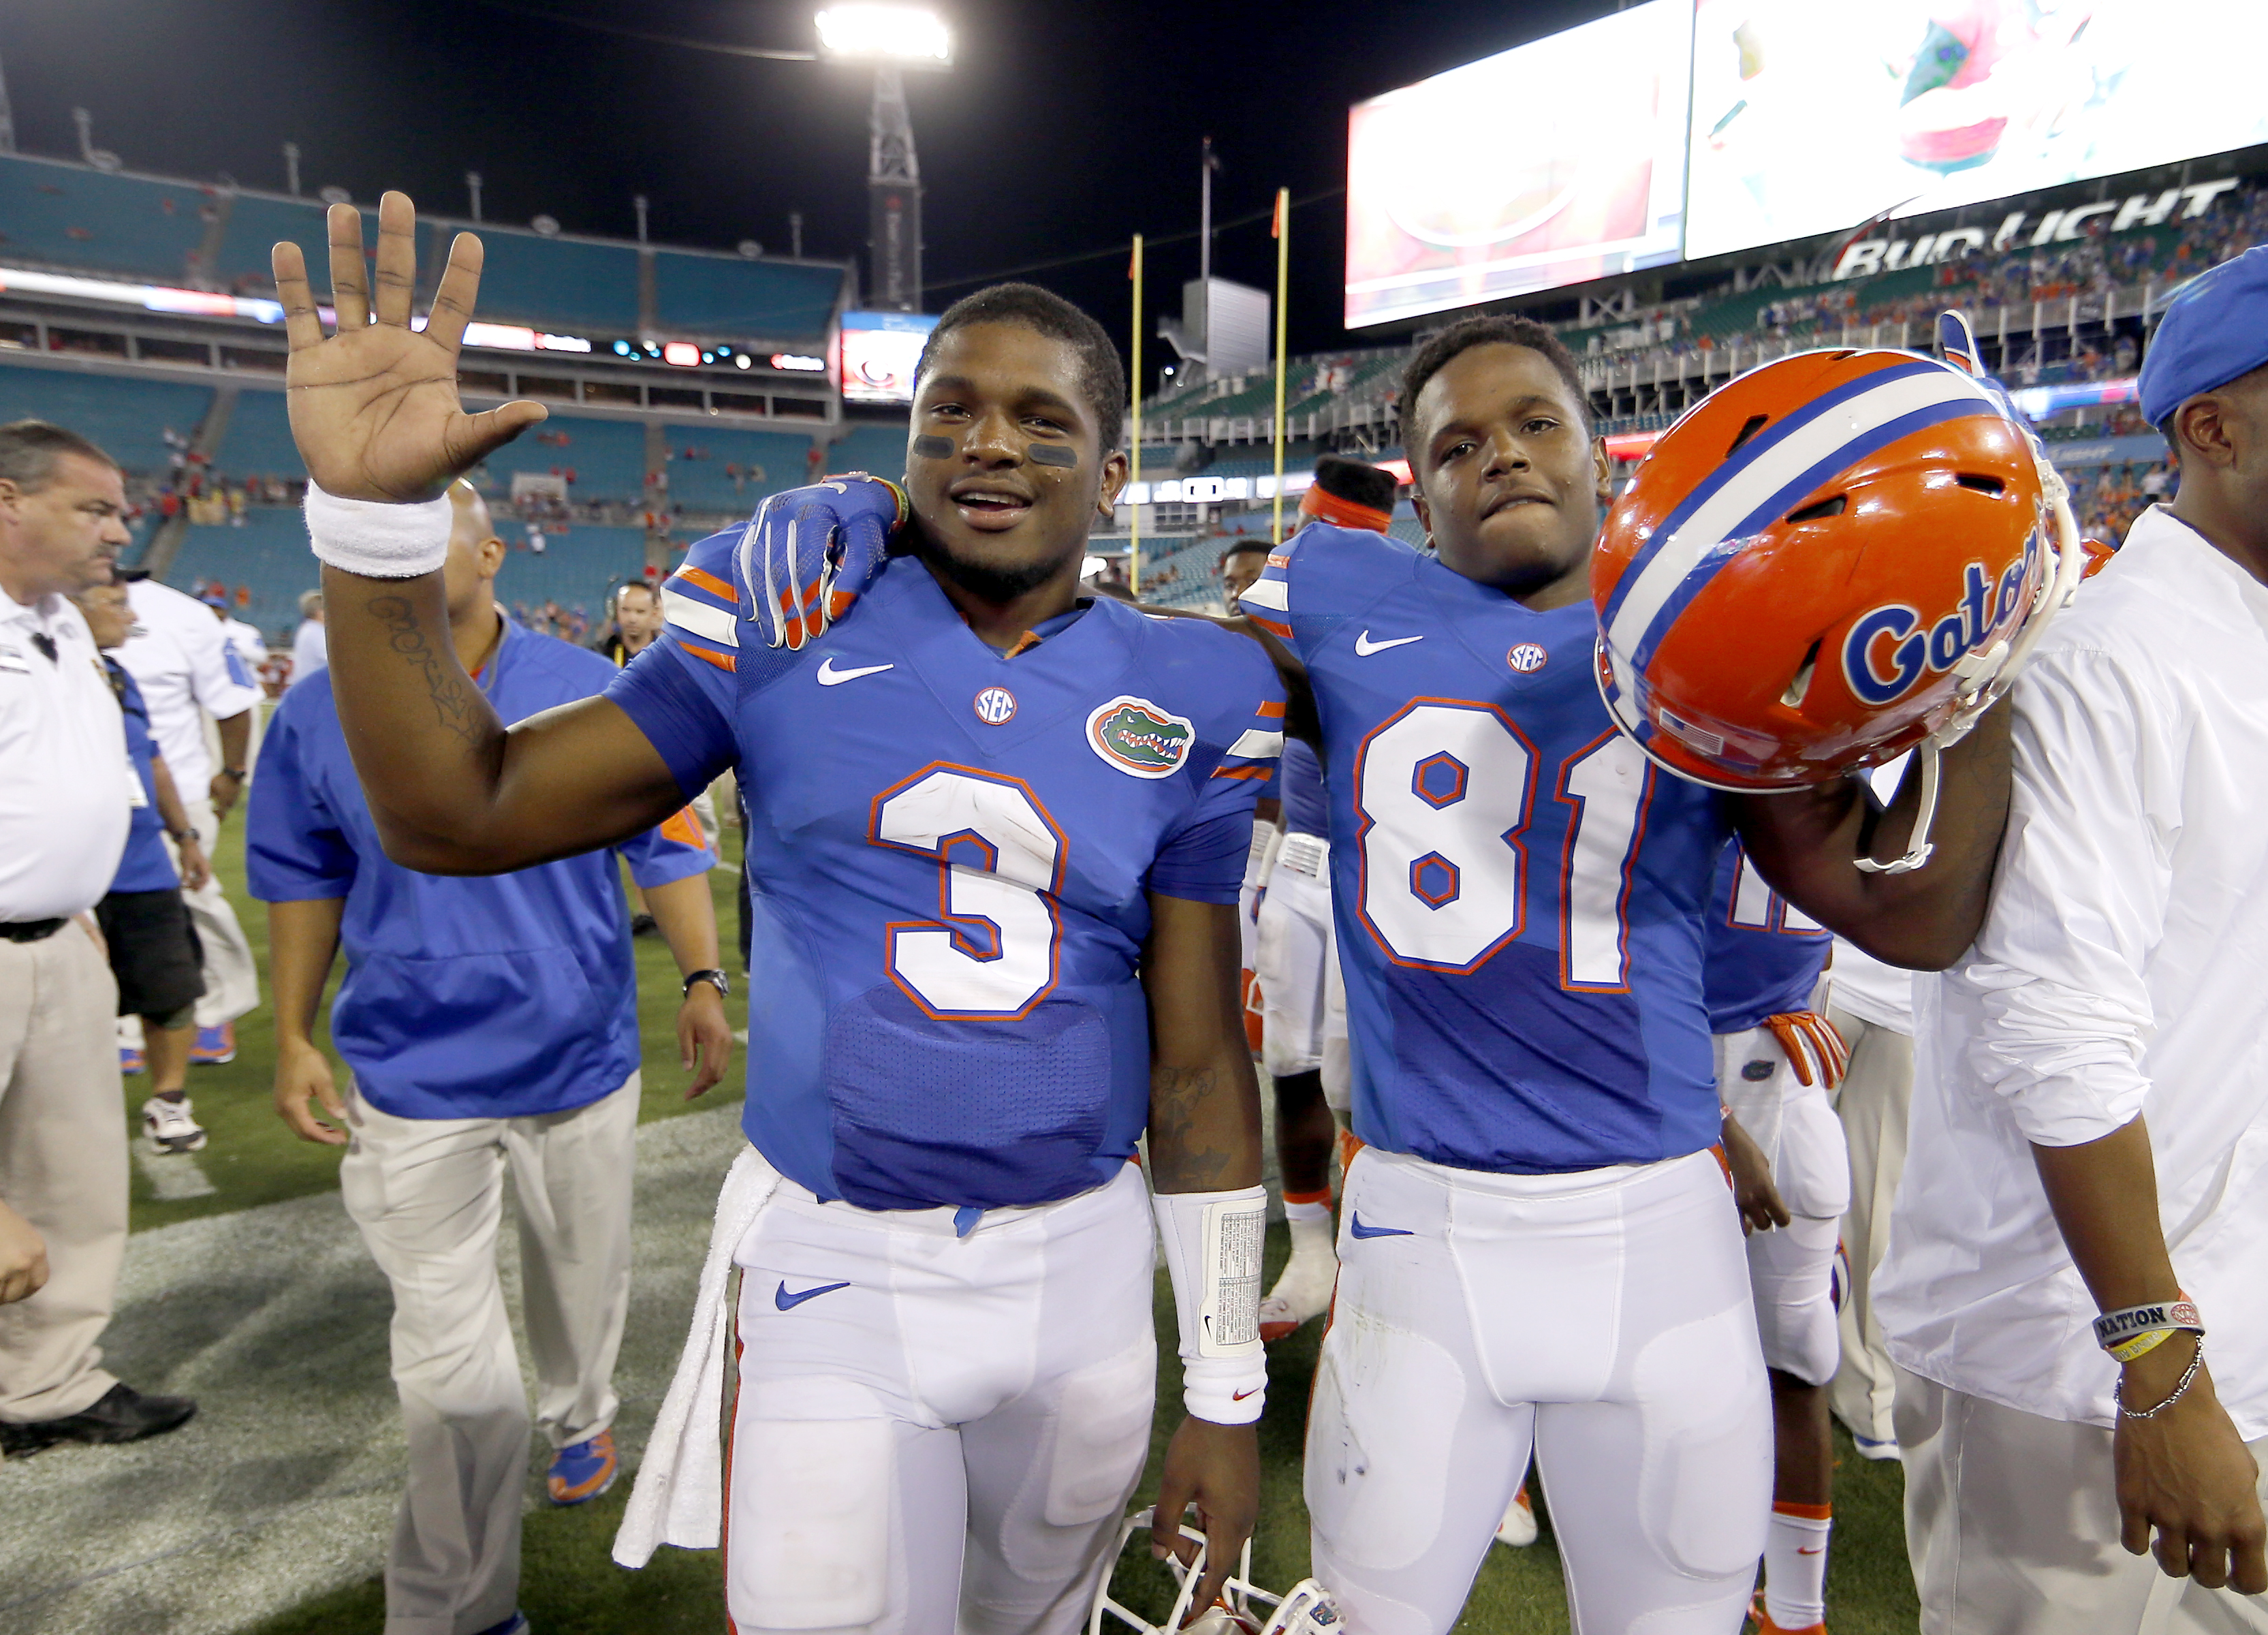 FILE - In this Oct. 31, 2015, file photo, Florida quarterback Treon Harris (3) and wide receiver Antonio Callaway (81) walk off the field together following an NCAA college football game against Georgia in Jacksonville, Fla. Florida coach Jim McElwain sai